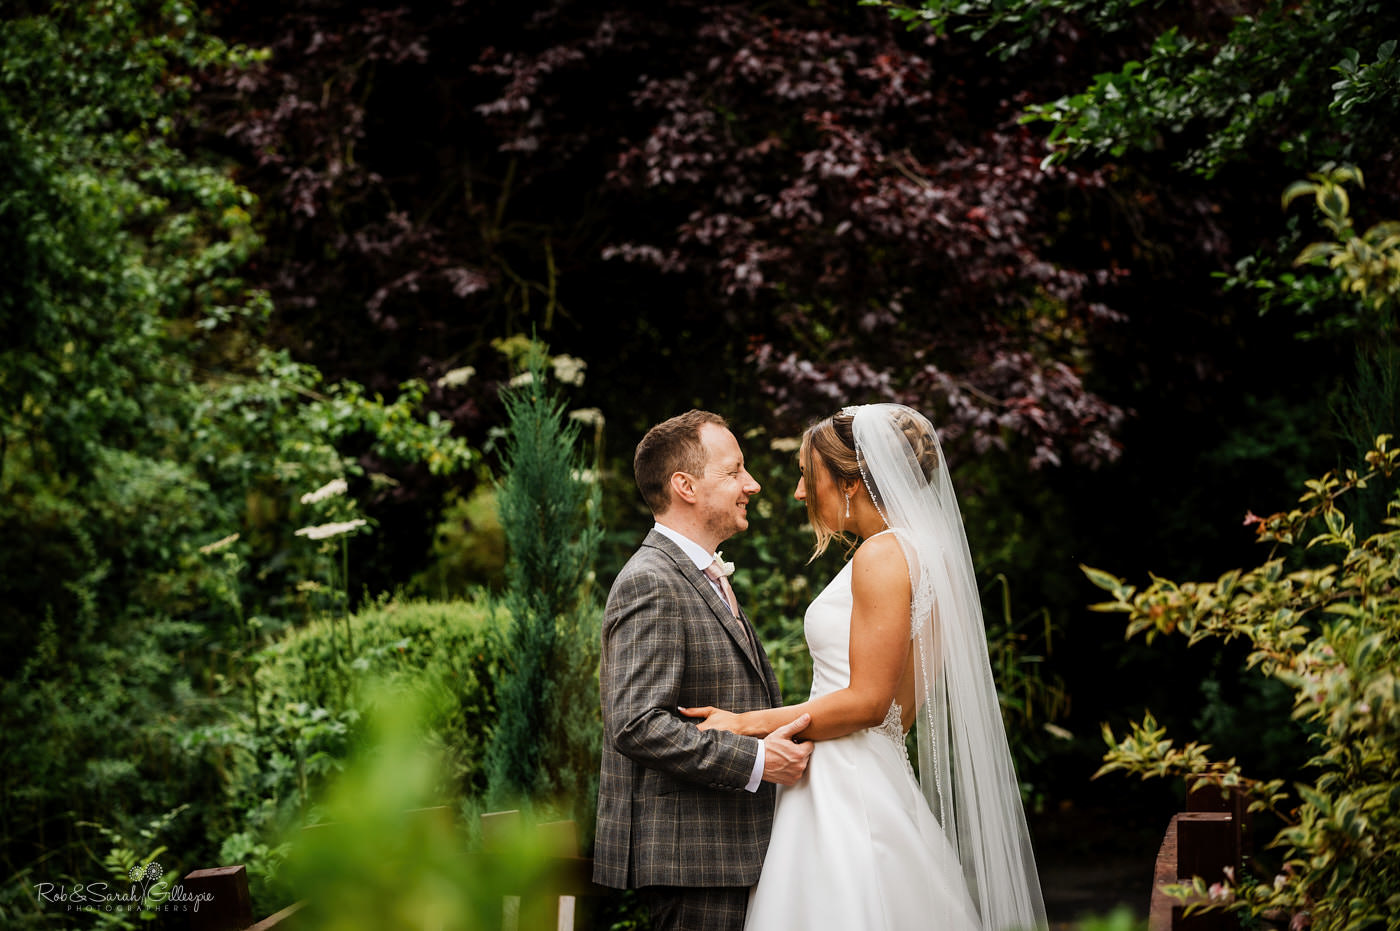 Bride and groom in gardens. Mill barns wedding photography.